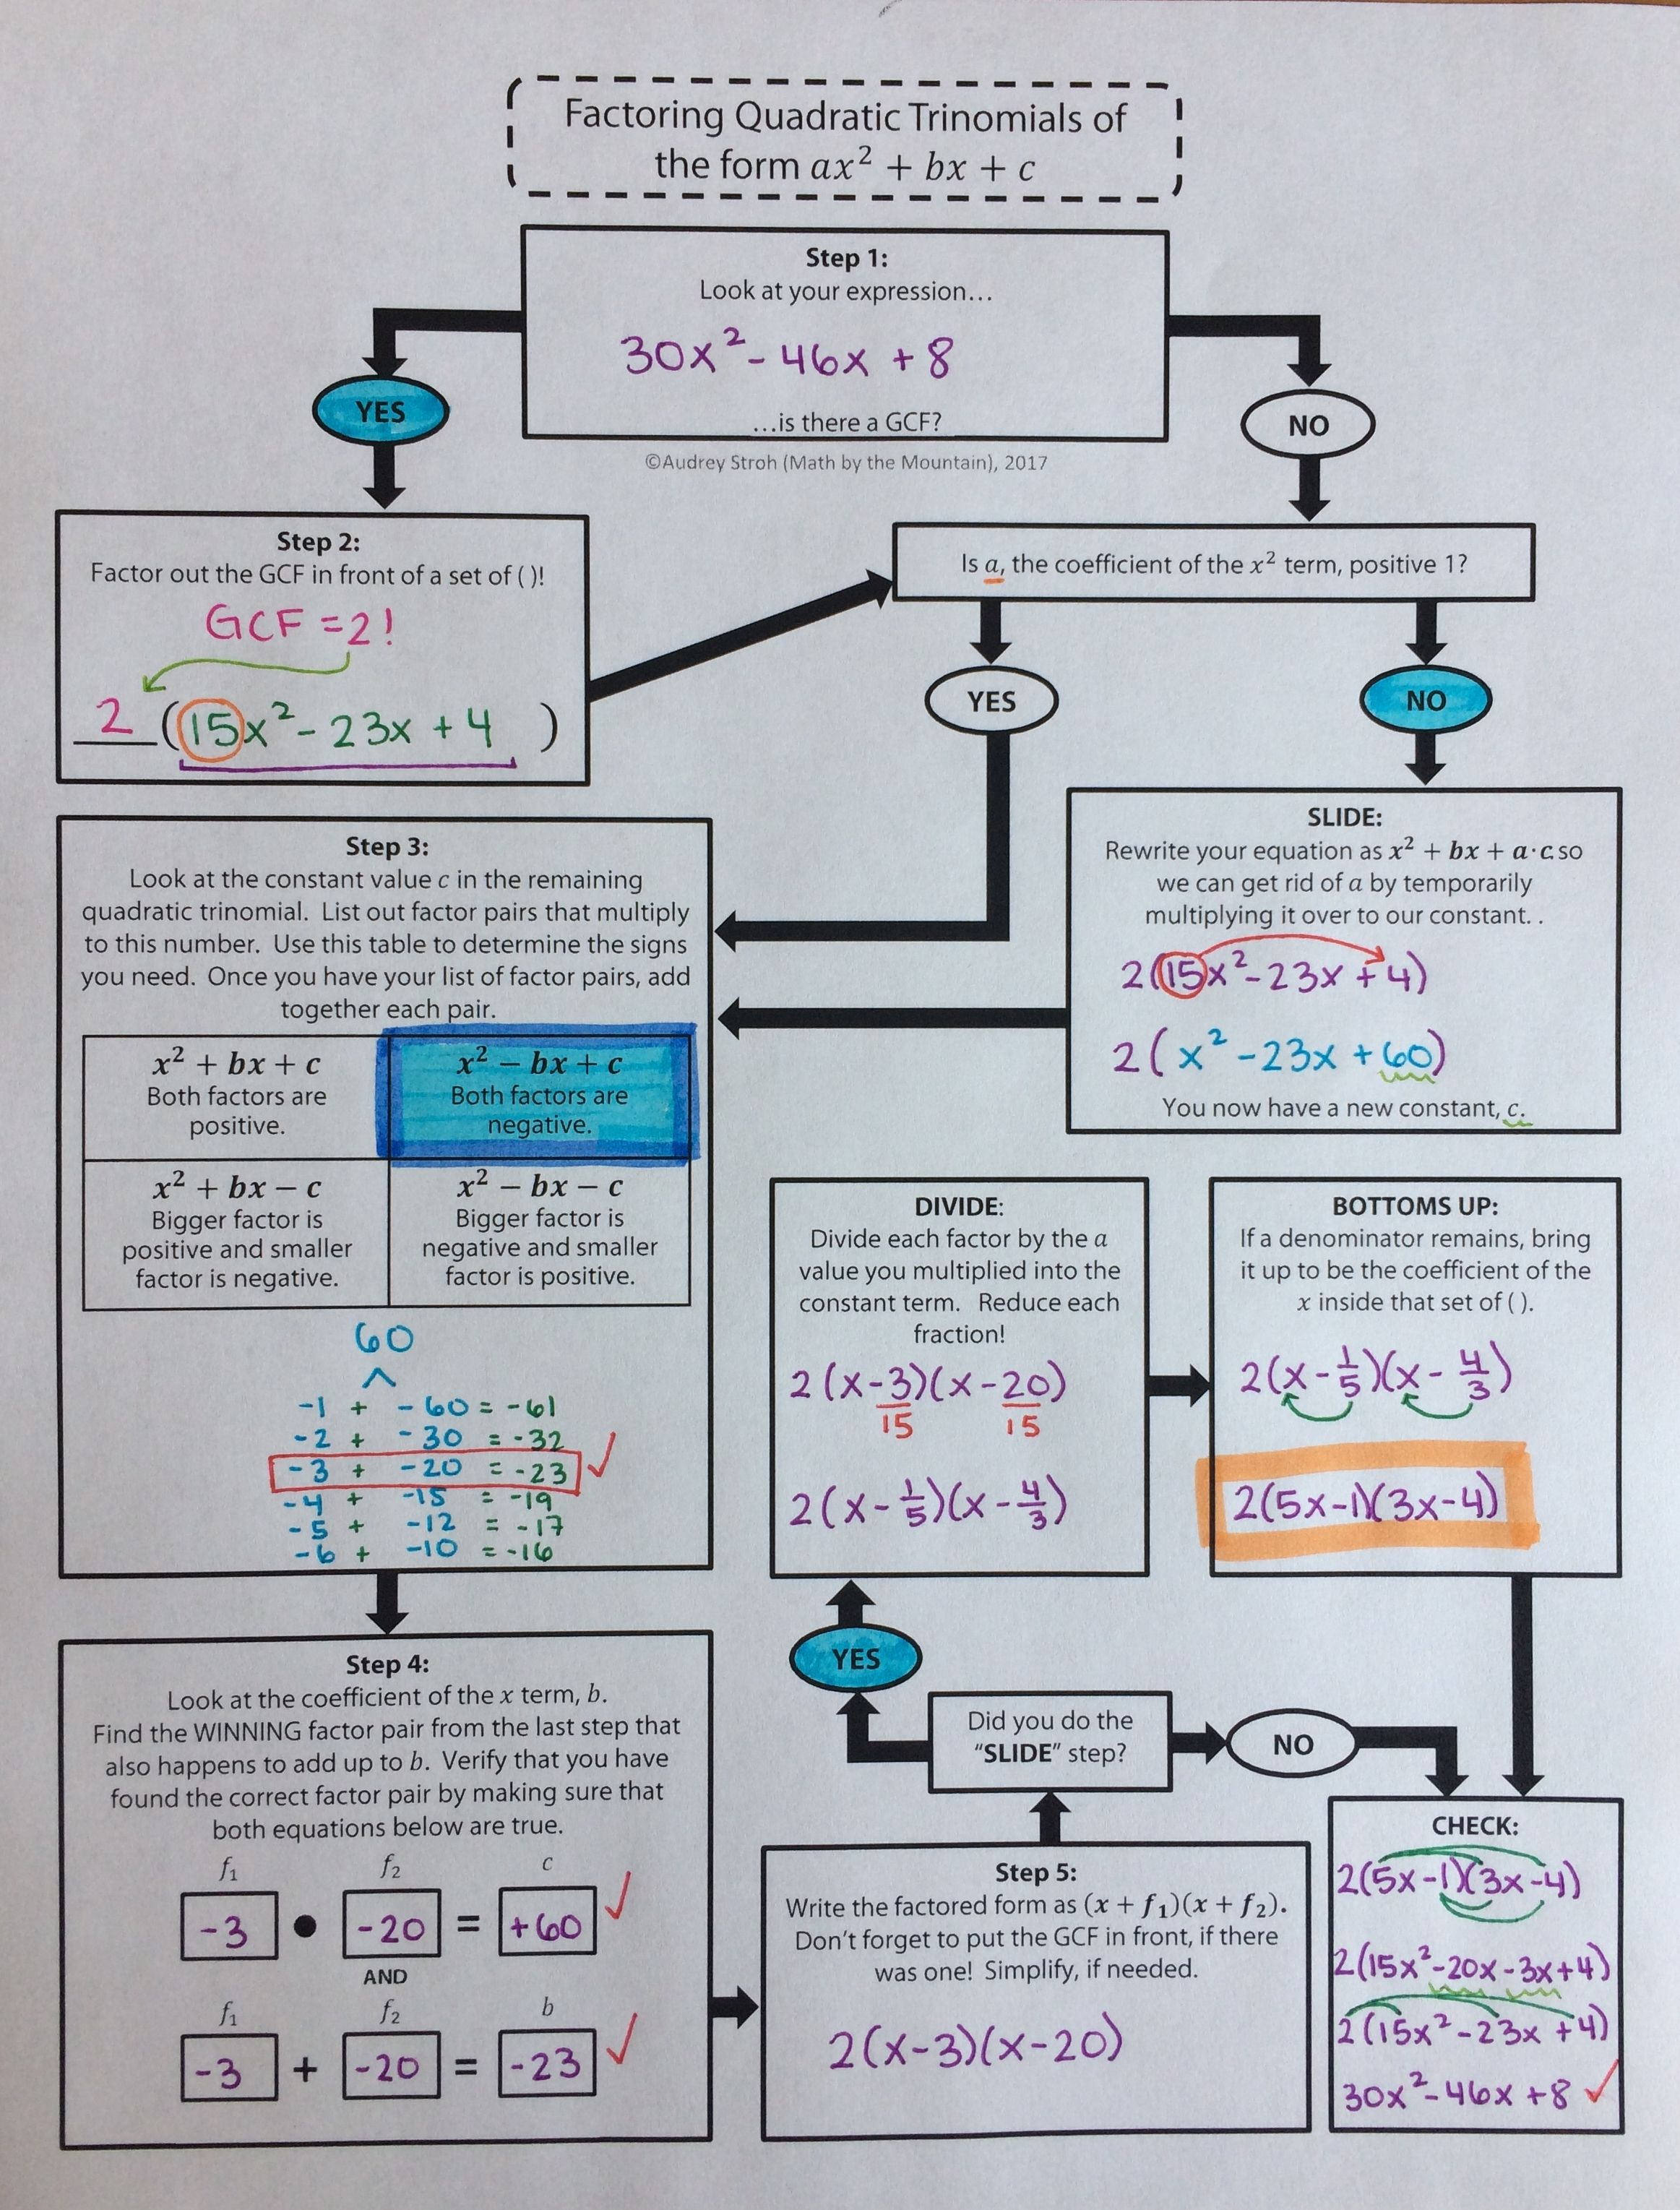 Factoring Quadratic Trinomials Flowchart Graphic